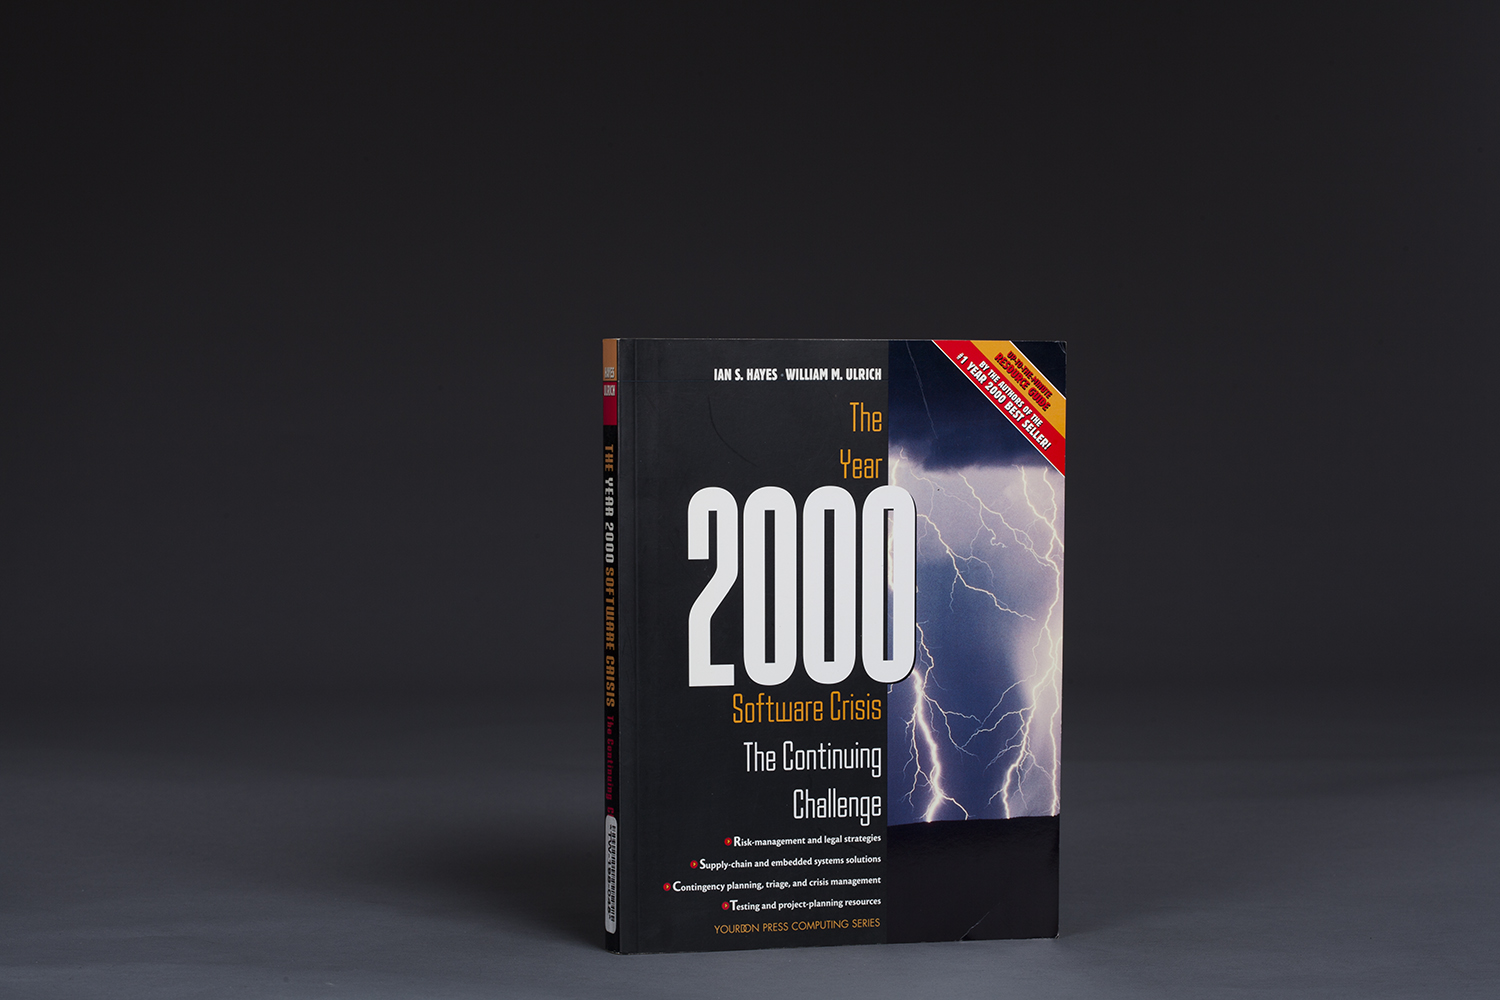 The Year 2000 Software Crisis - The Continuing Challenge - 0650 Cover.jpg